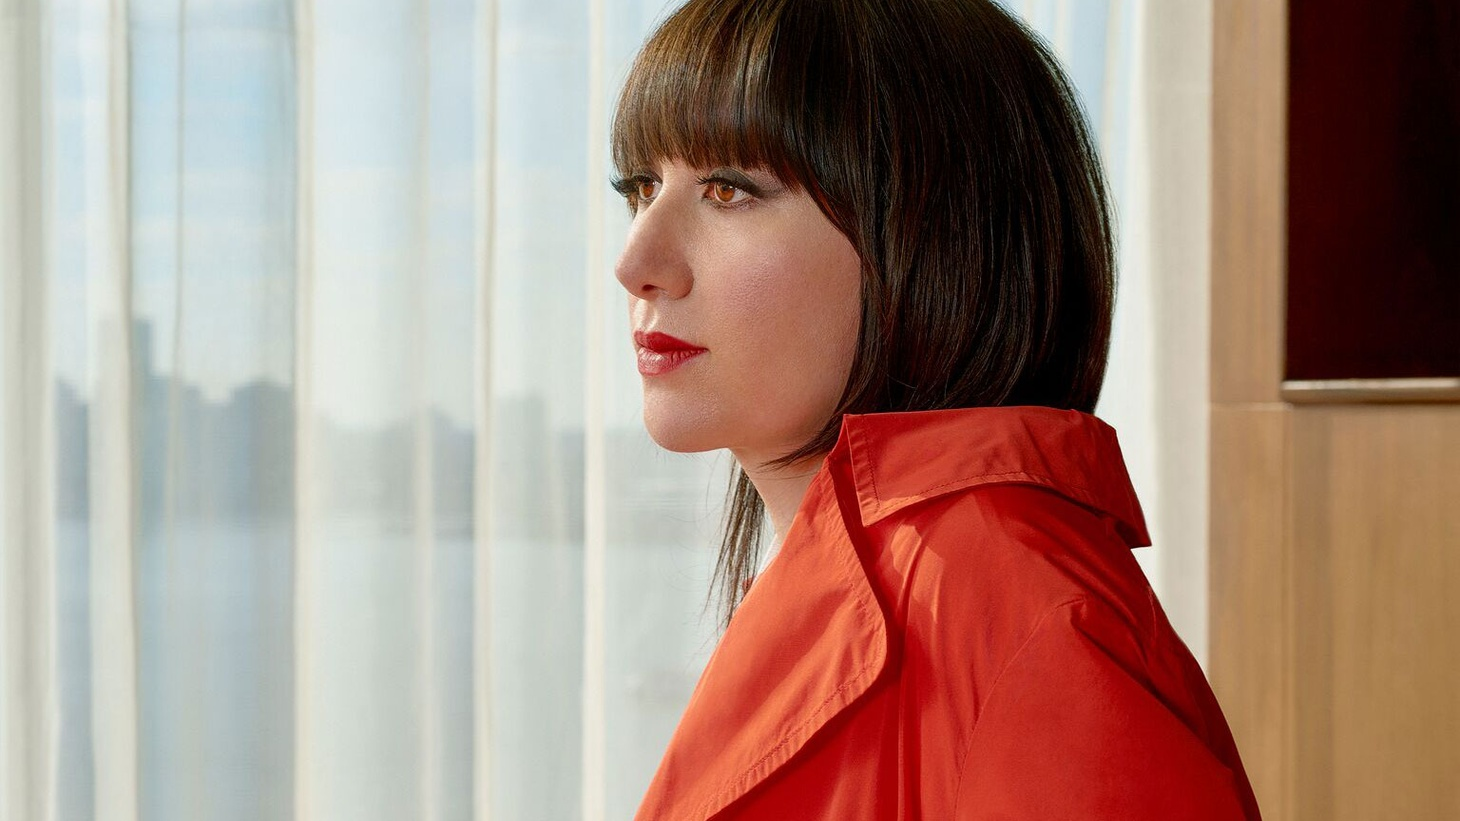 "Teaming up with the Kenzo fashion line, Karen O. creates an original song inspired by the Spring/Summer 2018 collection. ""Yo! My Saint"" is a stand alone track featuring the guest vocals of the supremely talented Michael Kiwanuka."